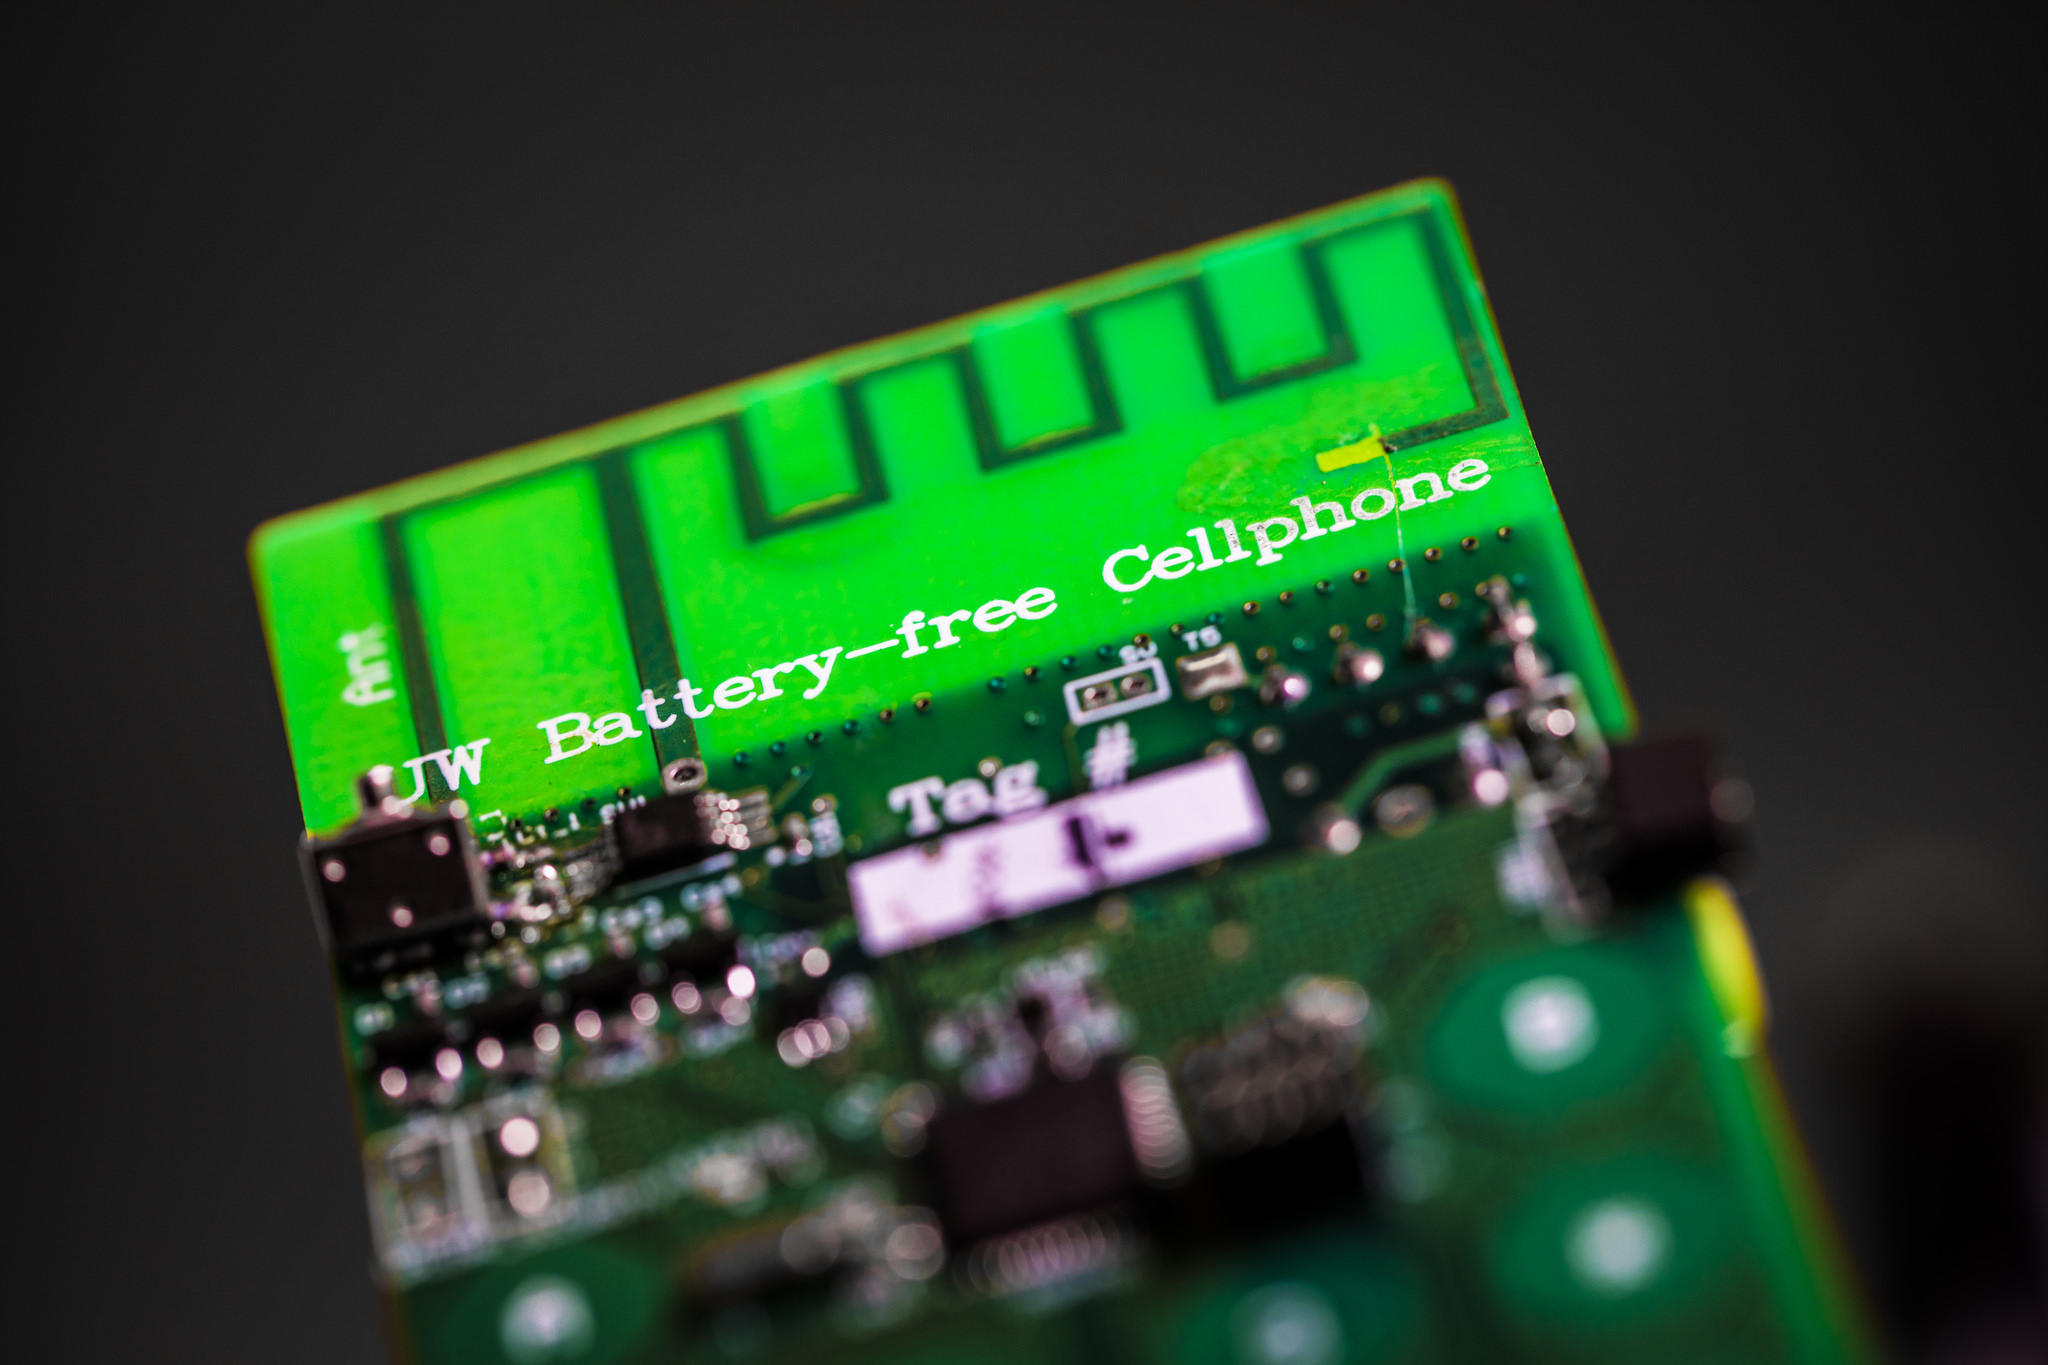 UW scientists create the first battery-free mobile phone